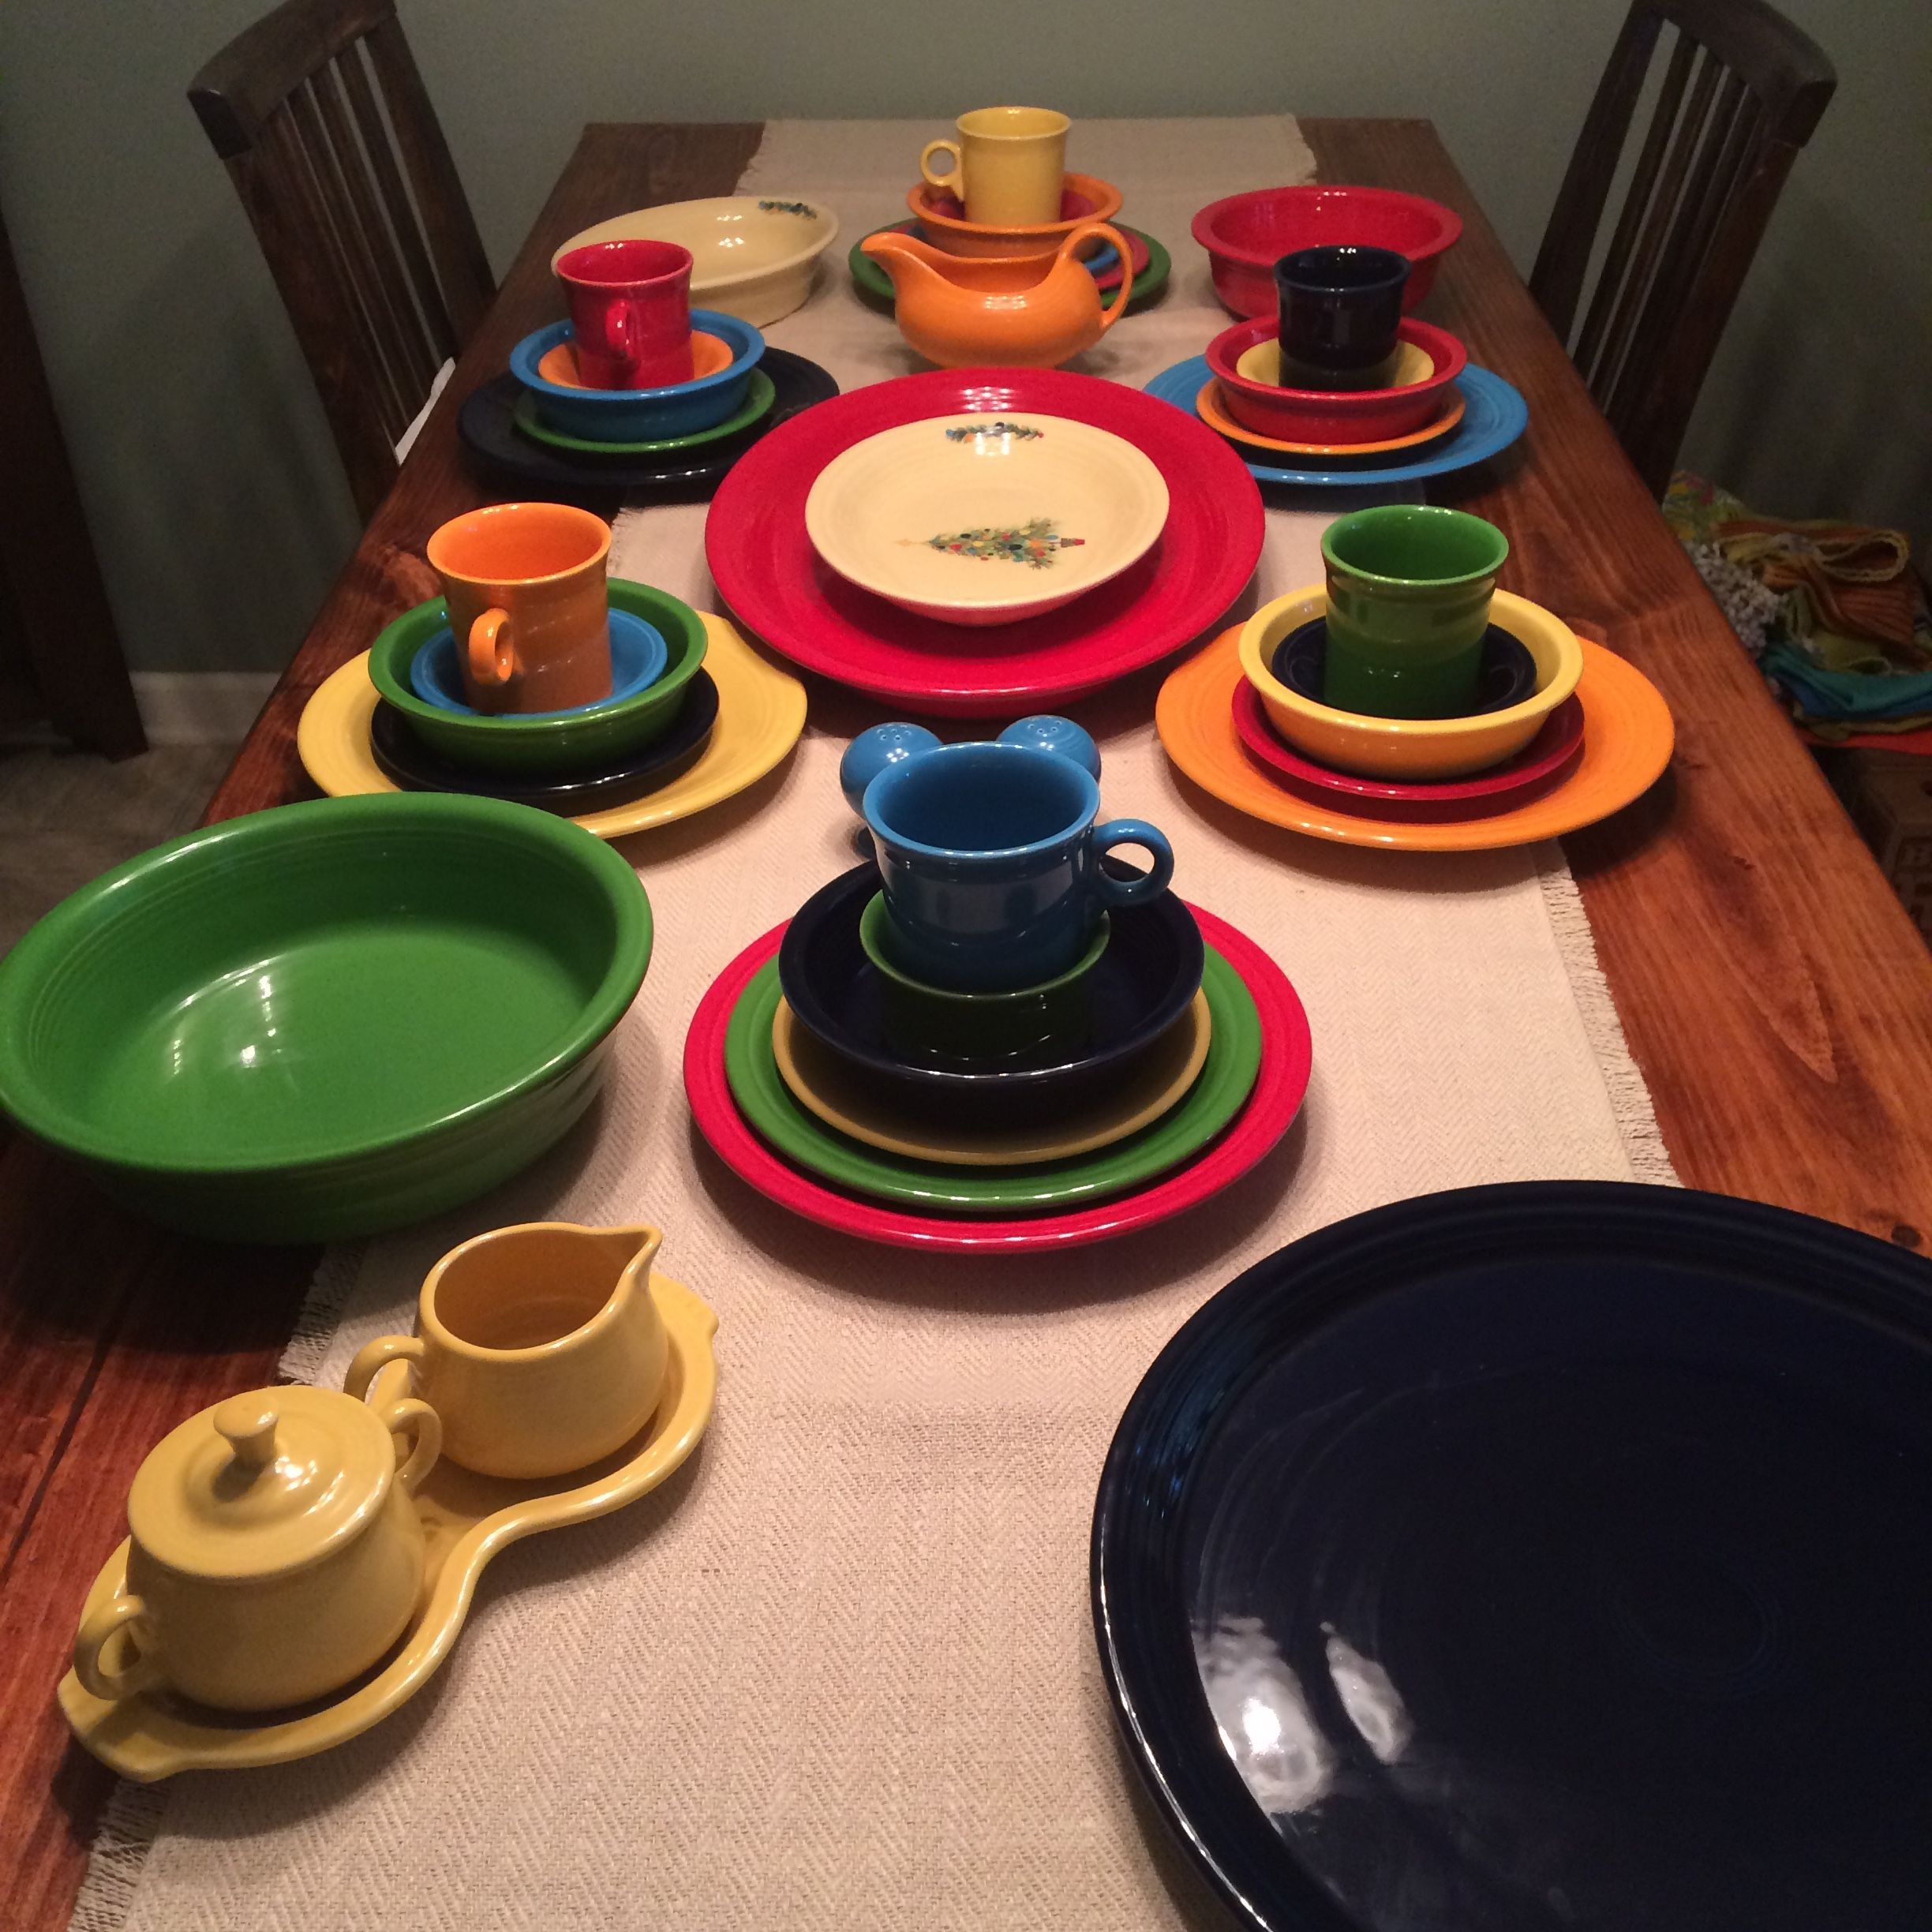 Bright and festive Christmas fiesta ware: cobalt, scarlet, shamrock, sunflower, tangerine, and peacock, with christmas tree serve ware on an ivory background